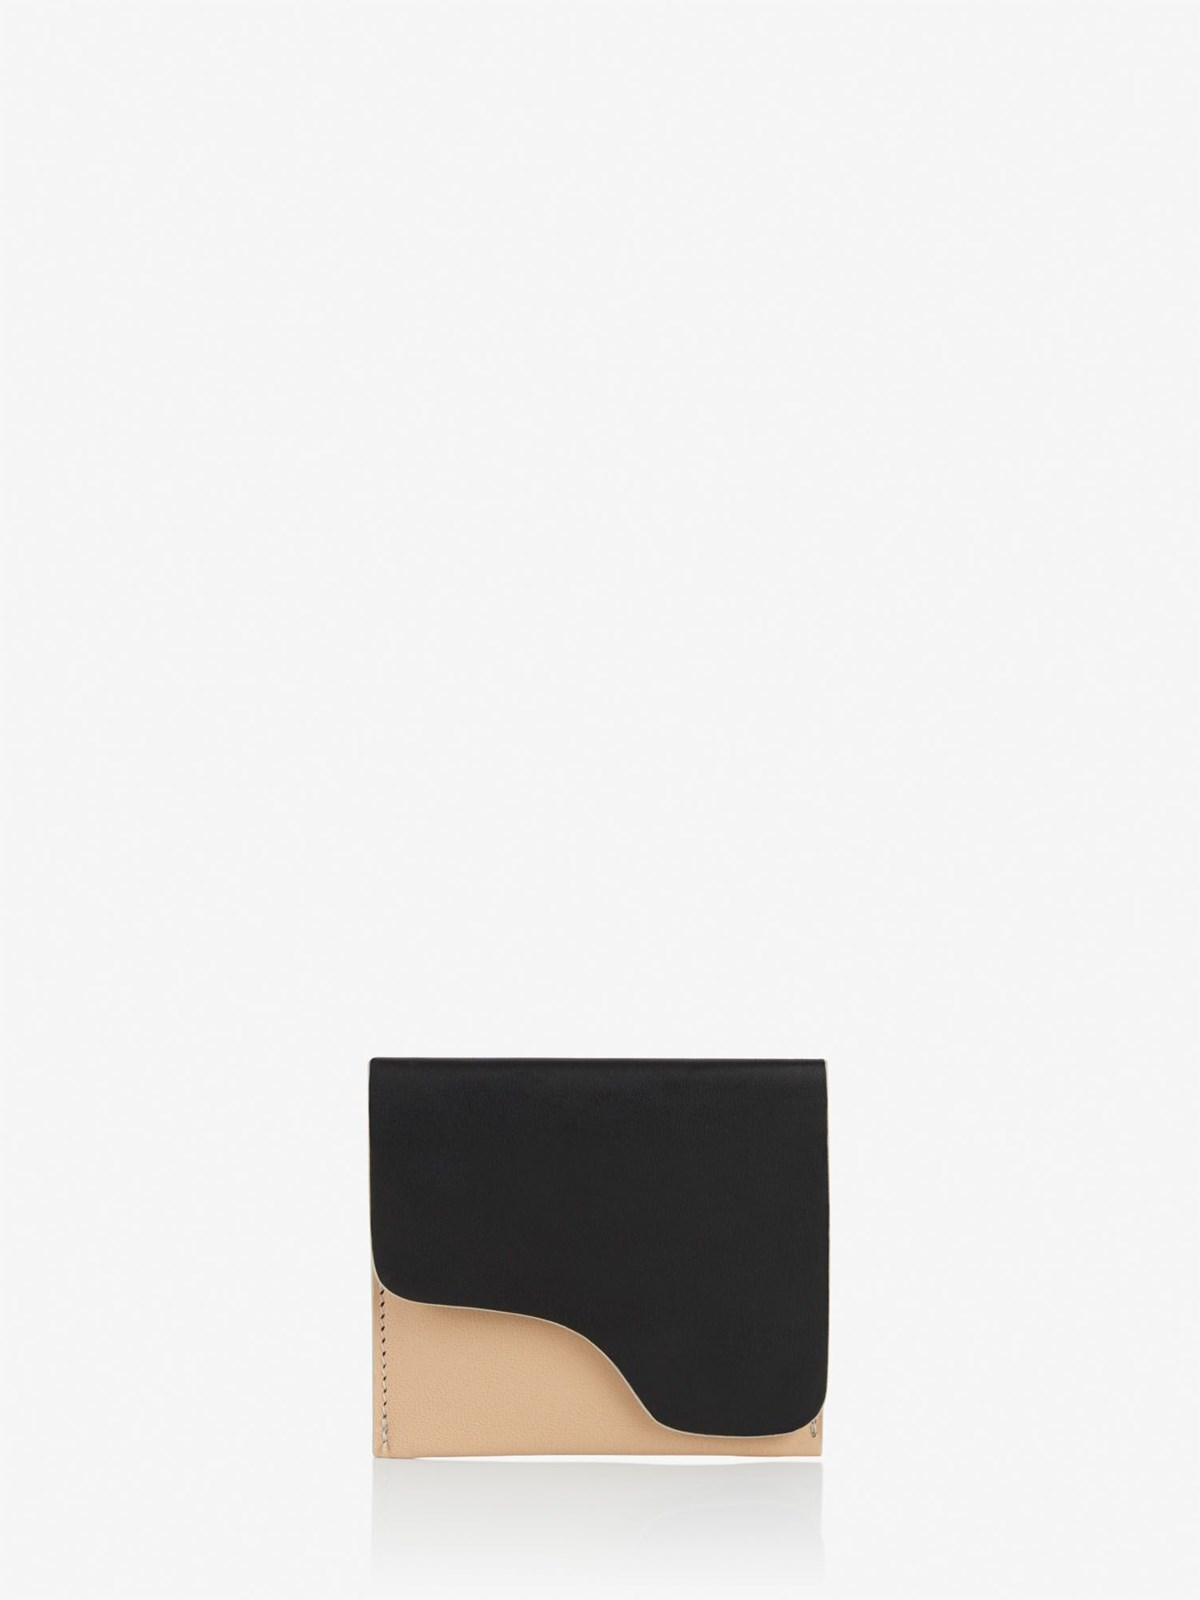 Olba Black Wallet